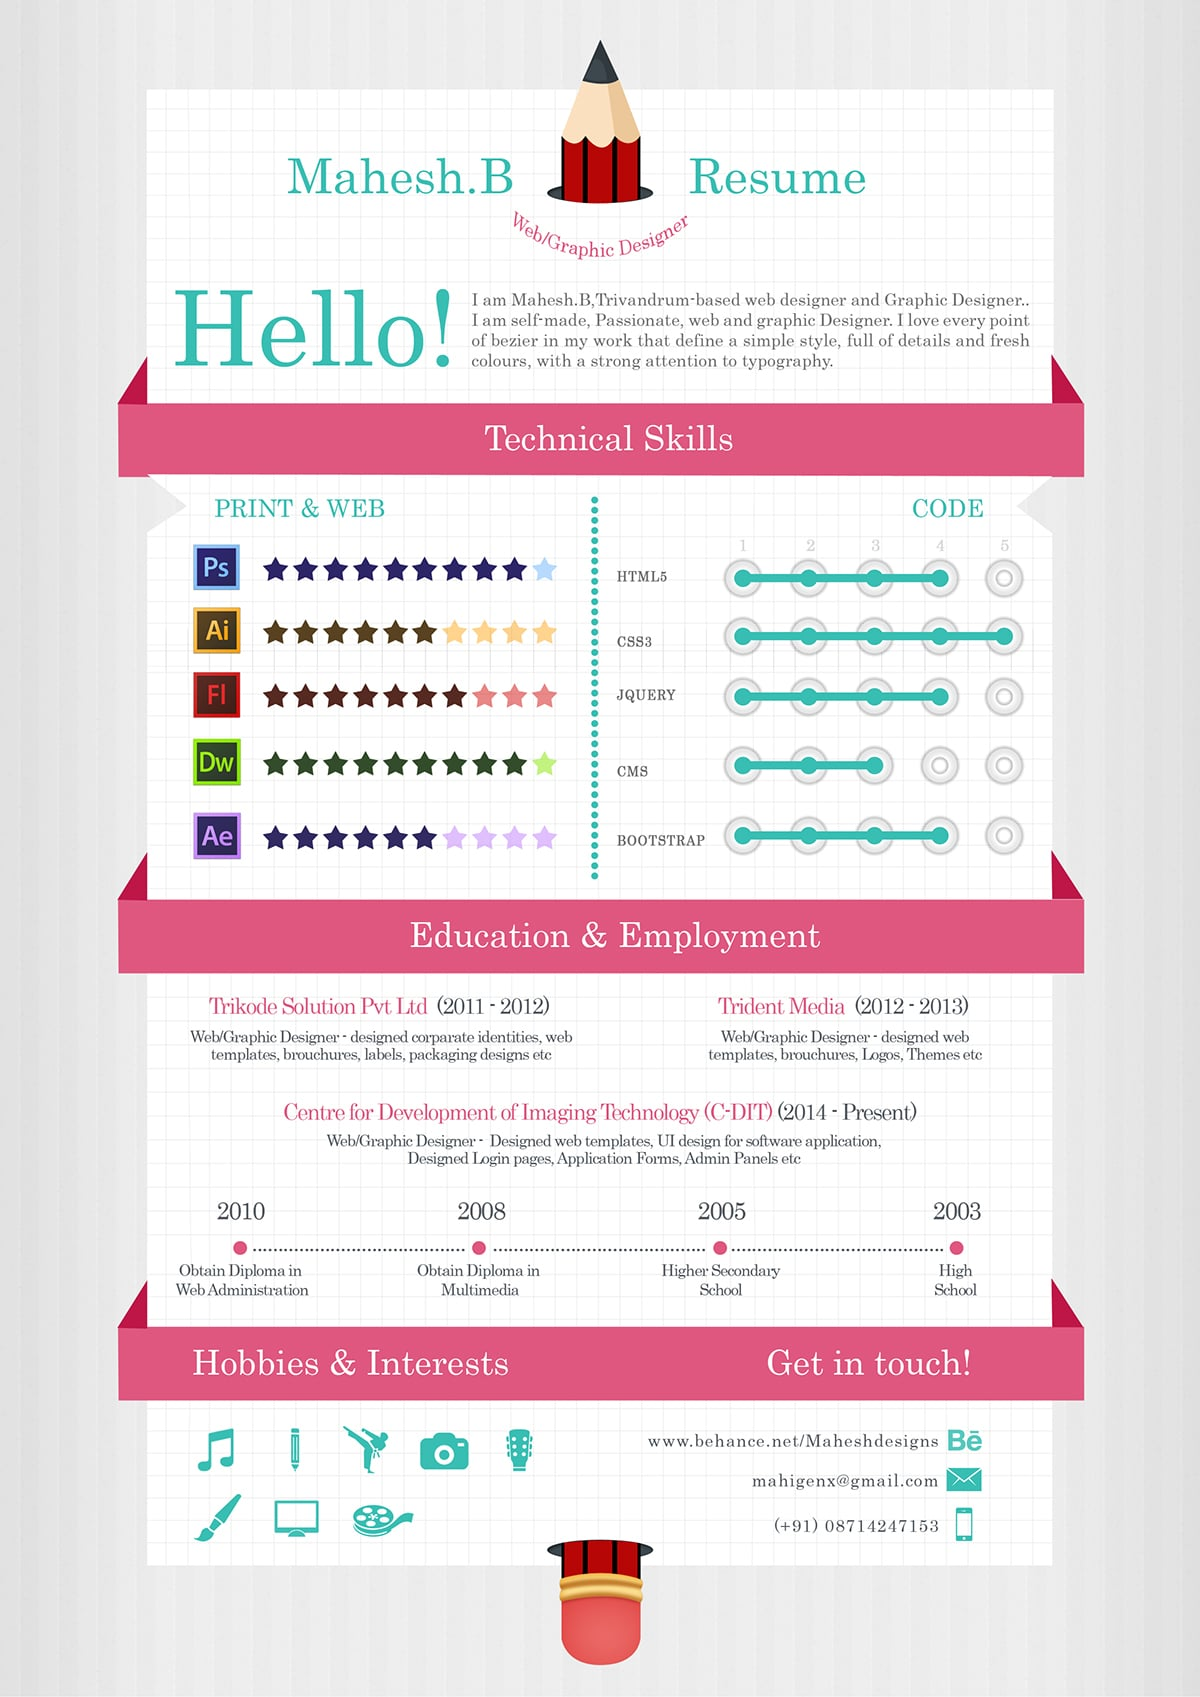 infographic resume templates free download - Resume Templates For Graphic Designers